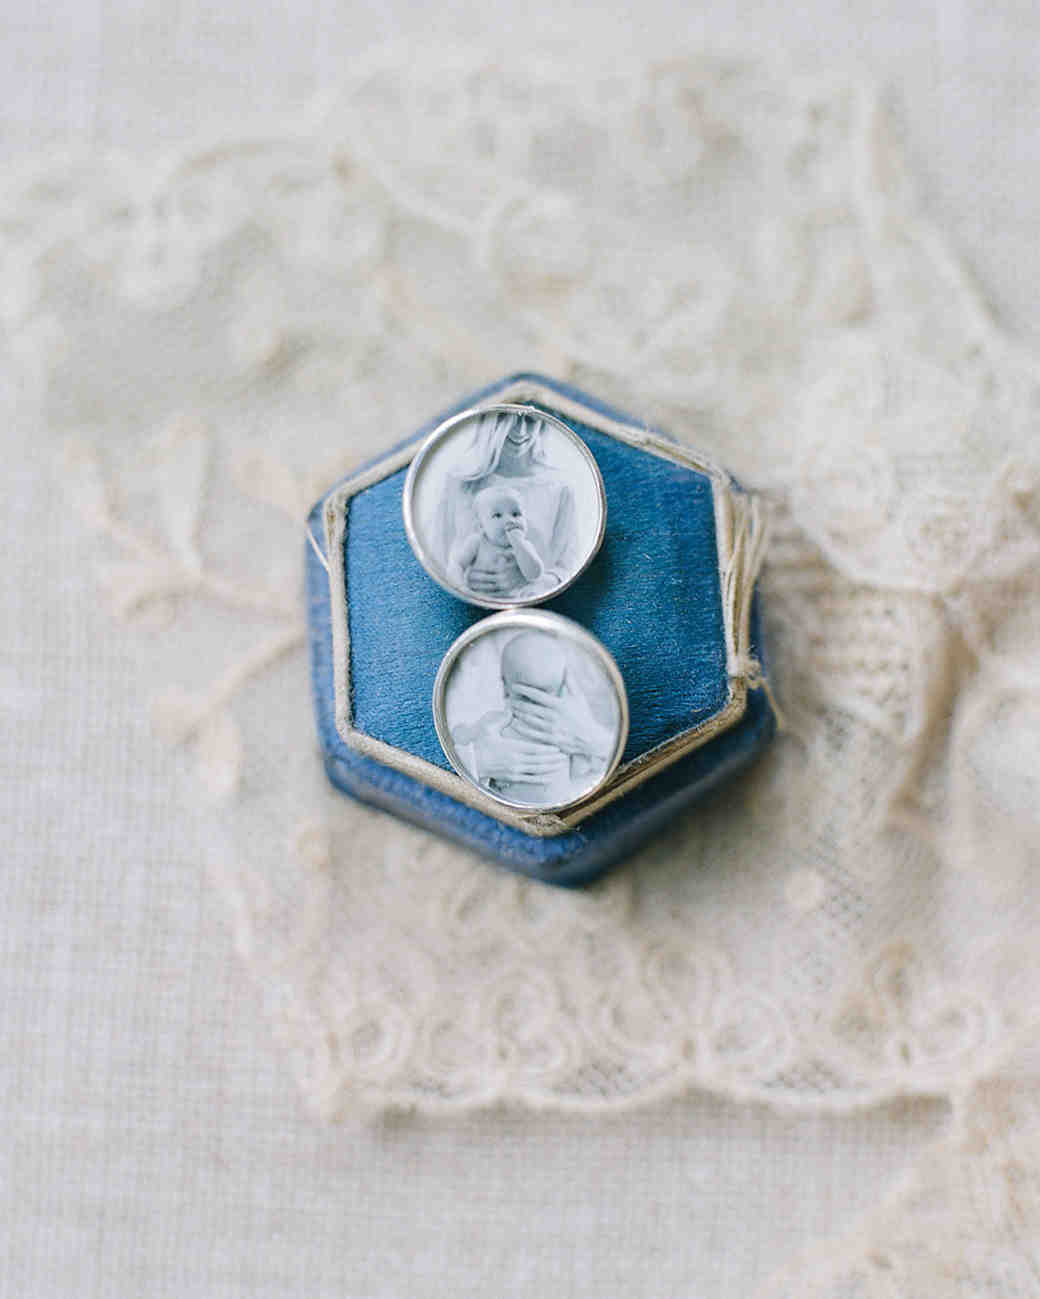 adrienne-jason-wedding-minnesota-photo-cuff-links-0049-s111925.jpg